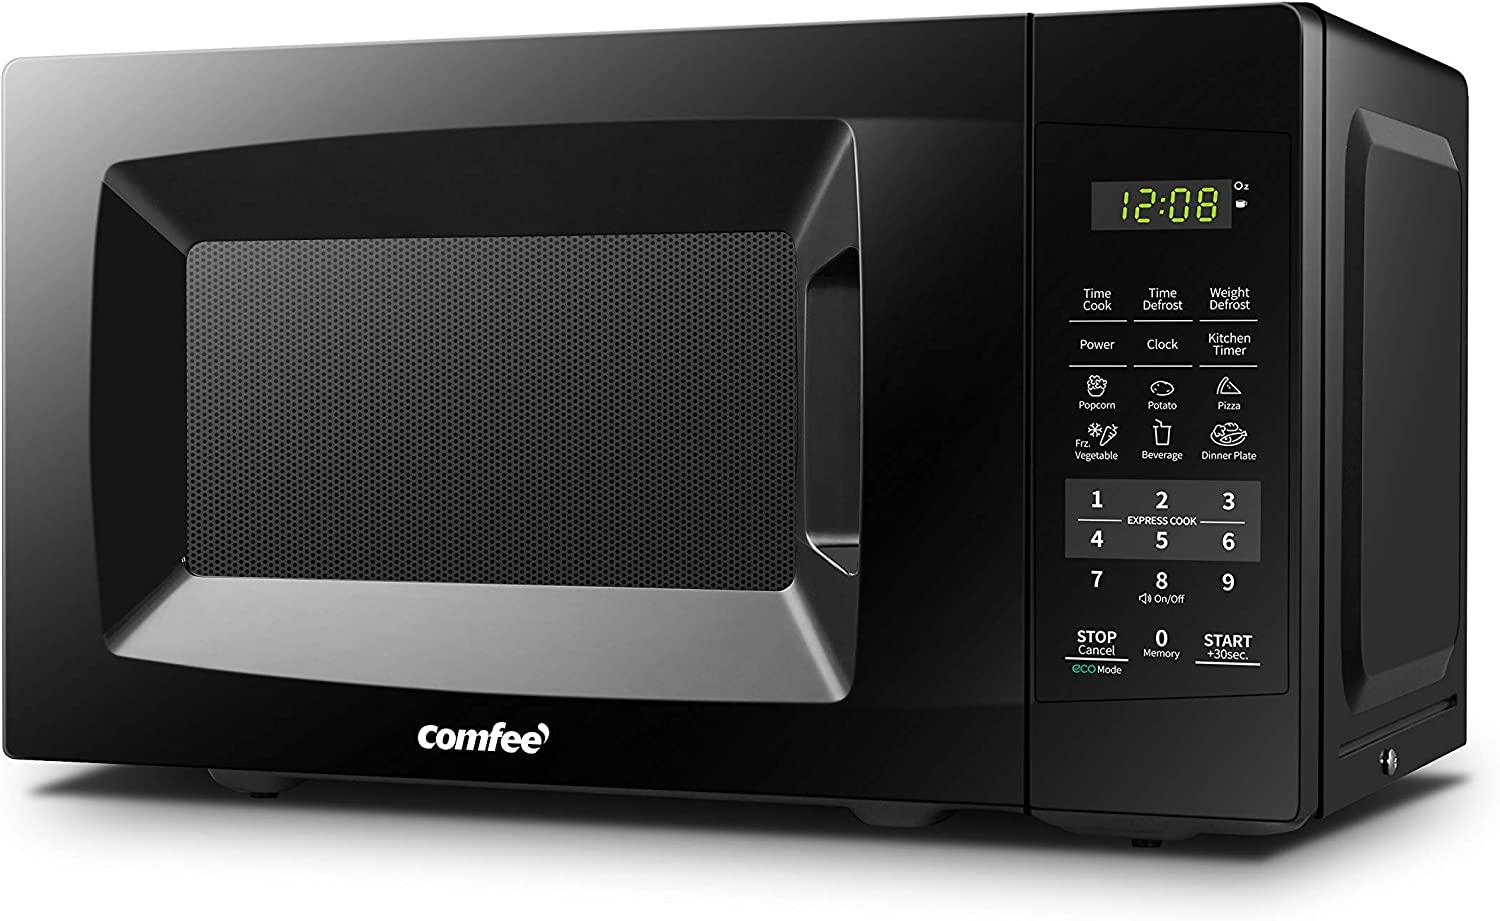 COMFEE' EM720CPL-PMB Countertop Microwave Oven with Sound On/Off, ECO Mode and Easy One-Touch Buttons, 0.7cu.ft, 700W, Black (Renewed)